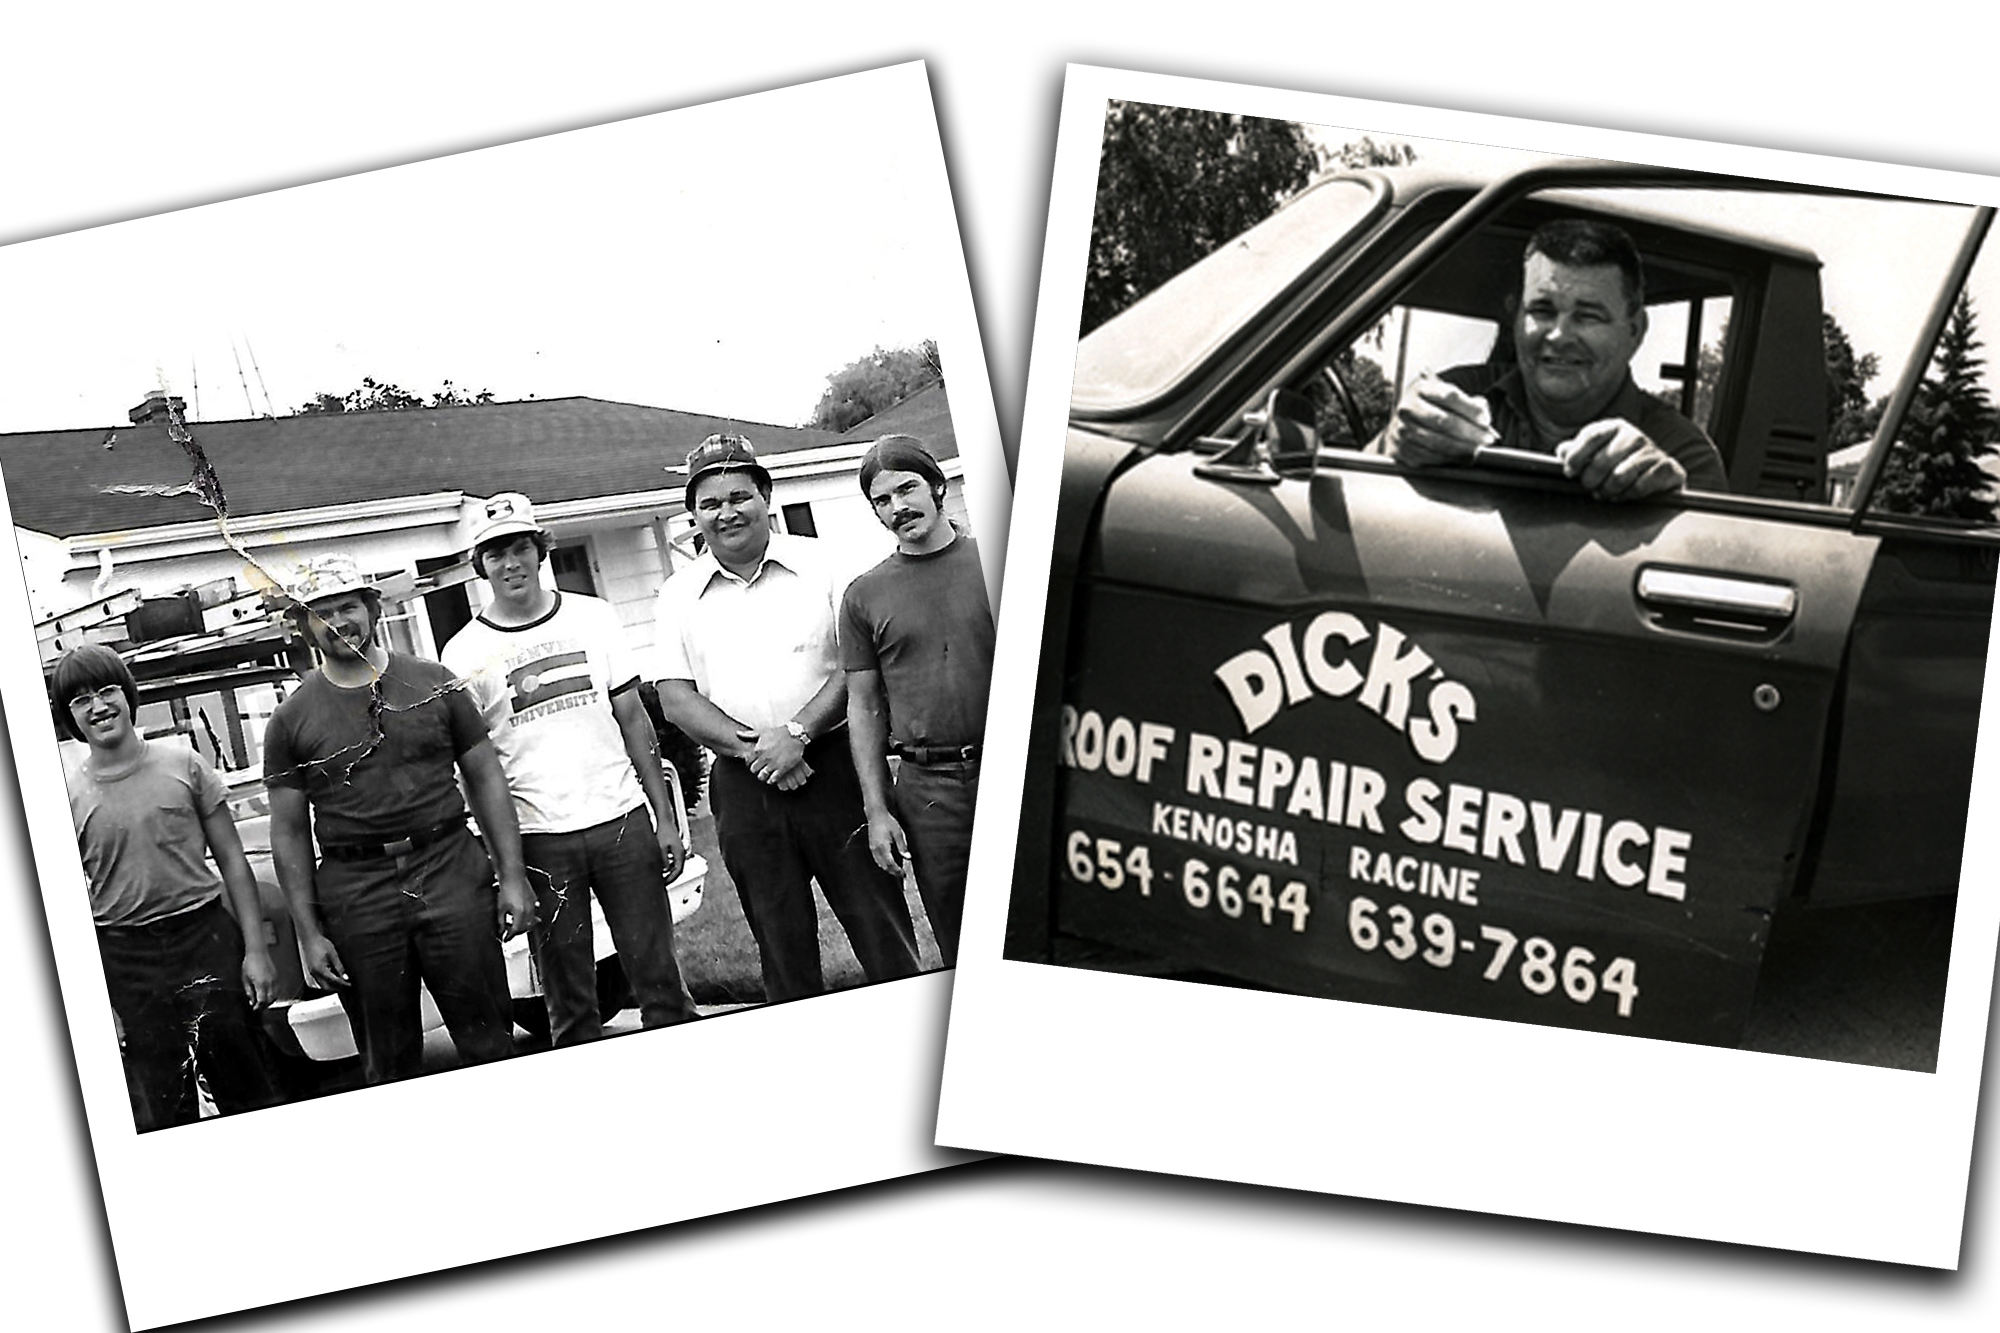 Serving Kenosha & Racine since 1957